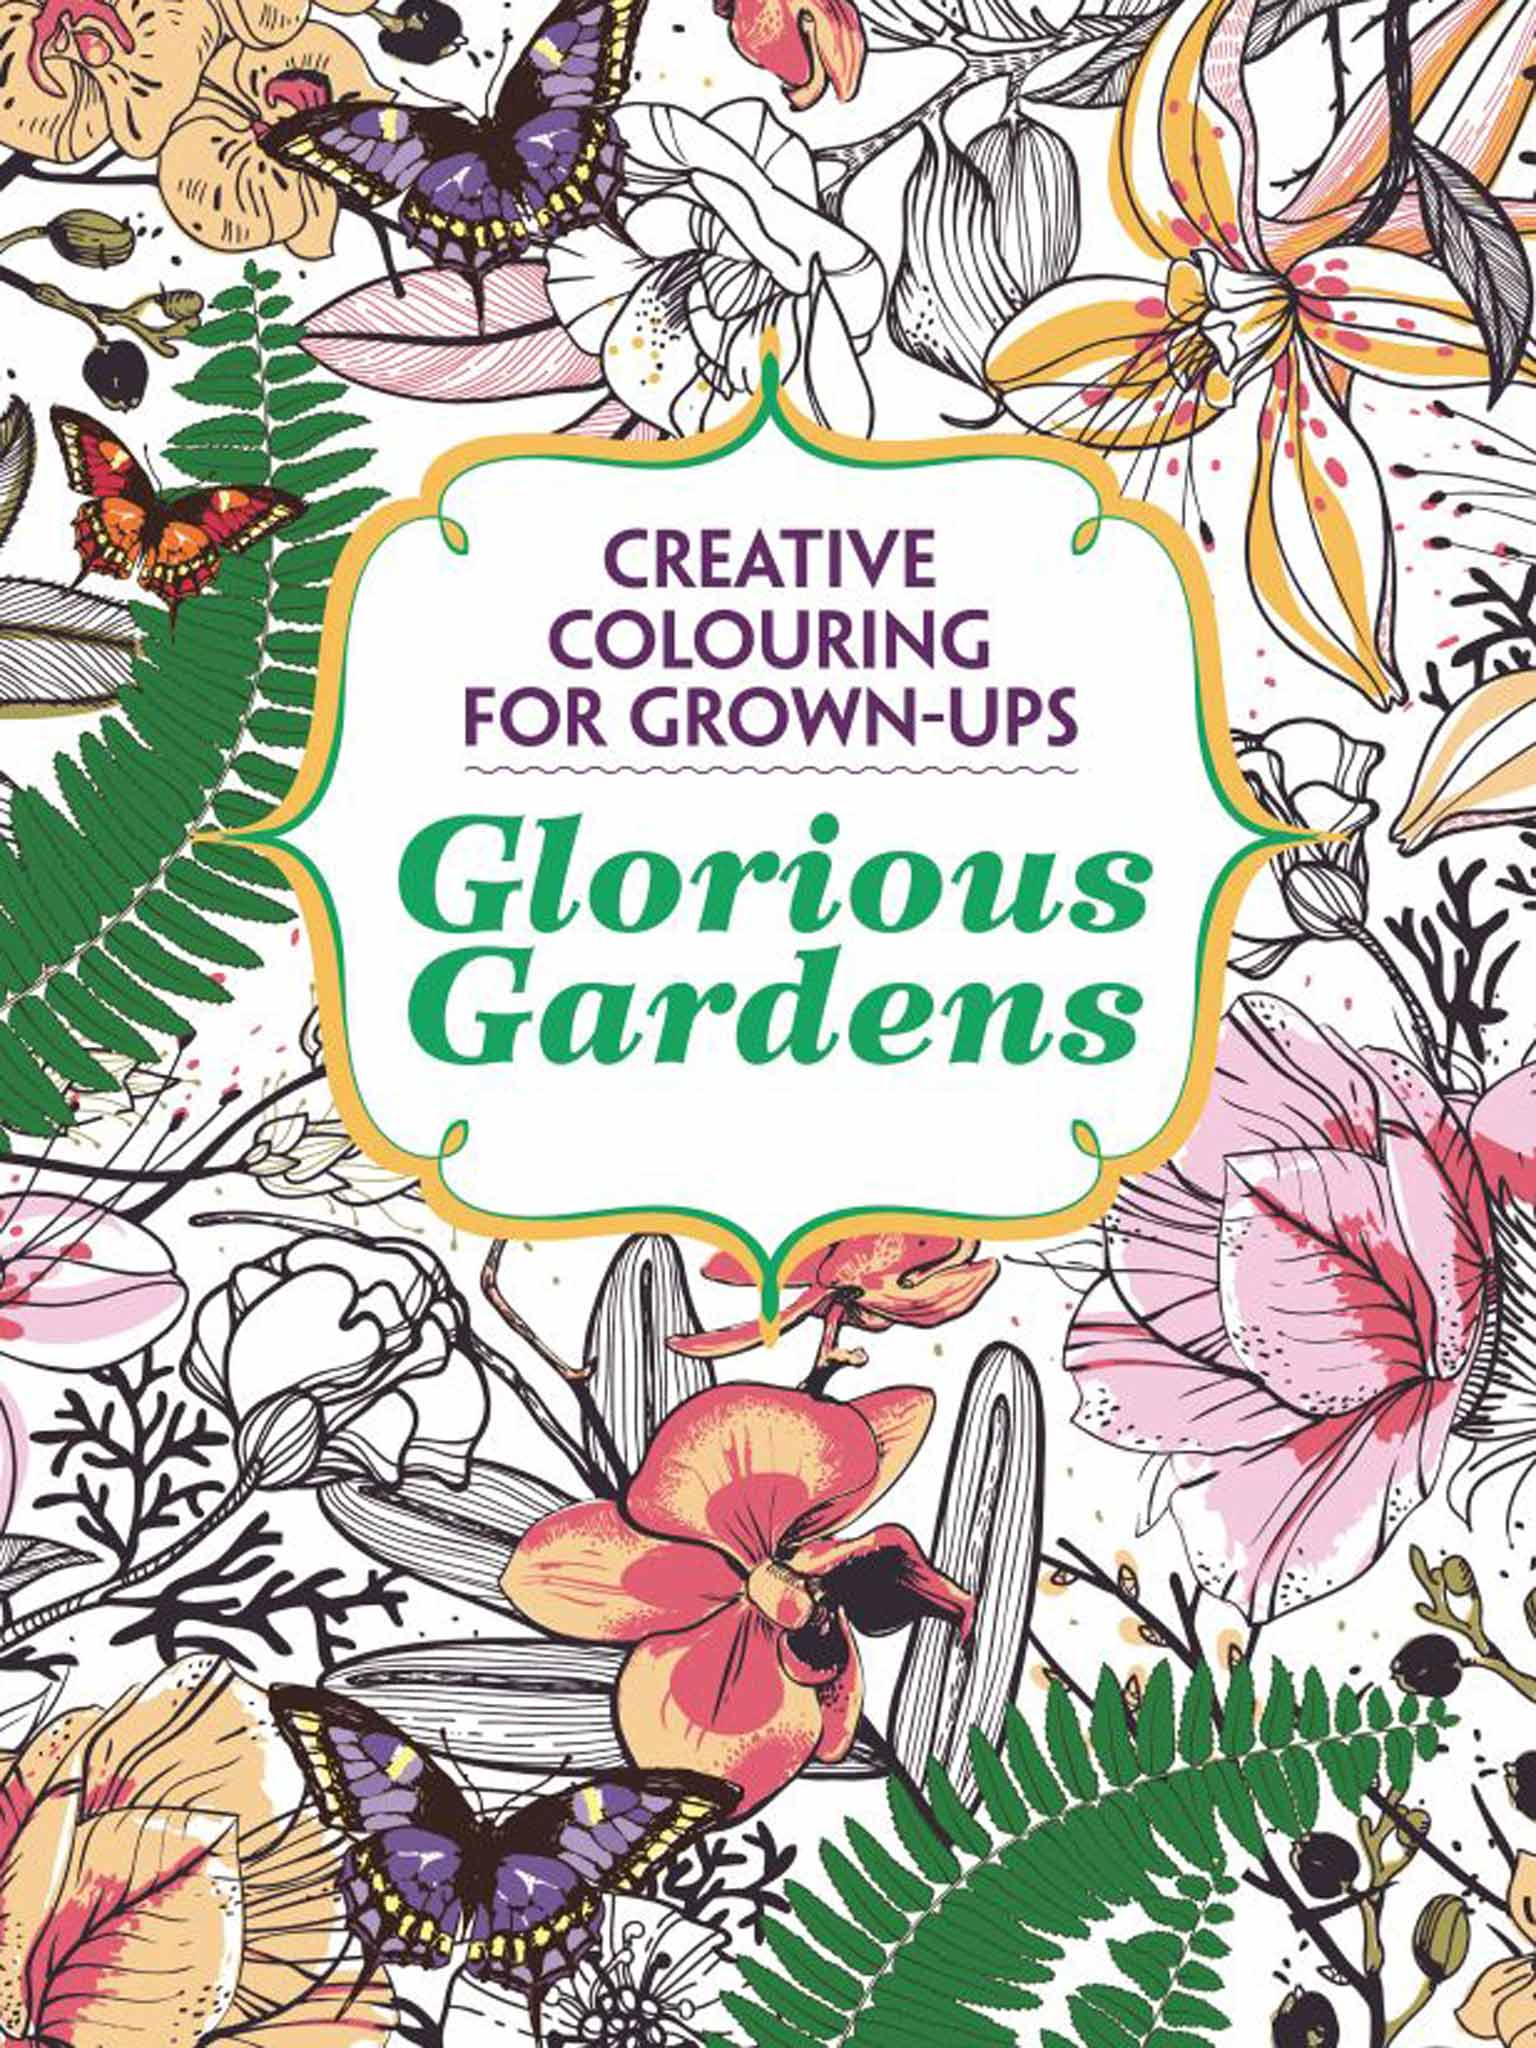 colouring books for adults how the french are going crazy for crayolas the independent - Colouring Books